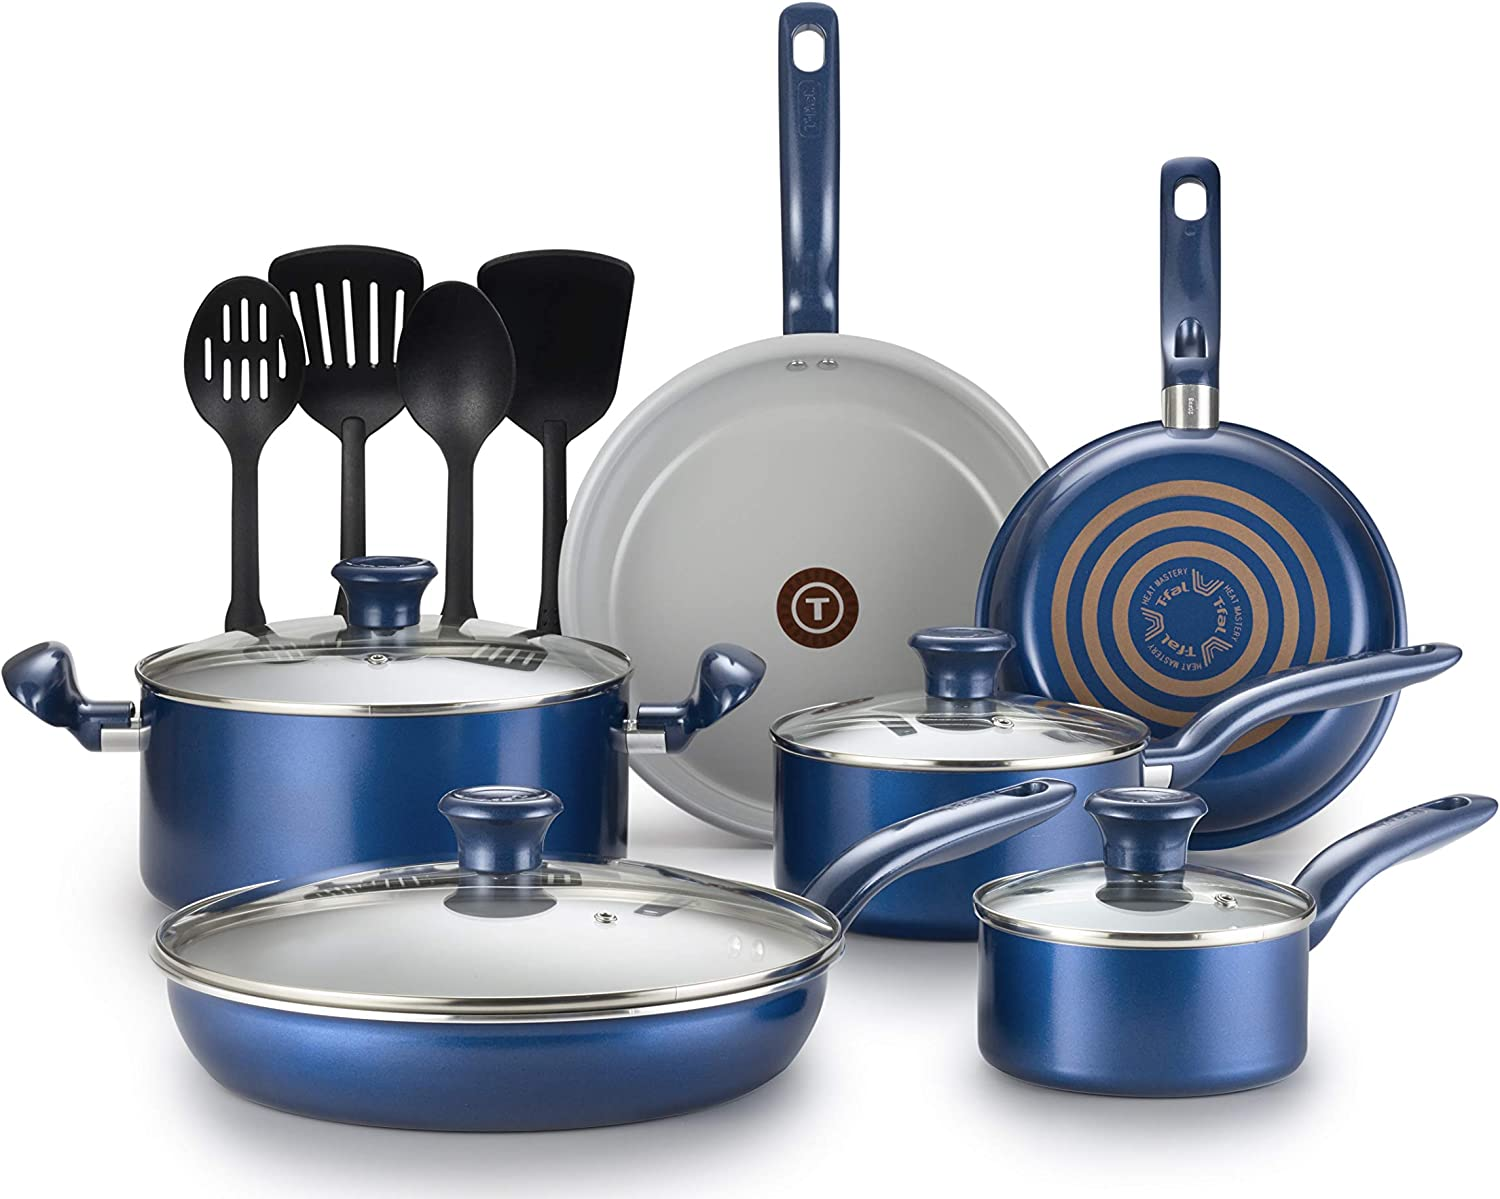 T-fal G918SE64 Initiatives Ceramic Thermo-Spot Heat Indicator Dishwasher Oven Safe Toxic Free Cookware Set, 14-Piece, bluee